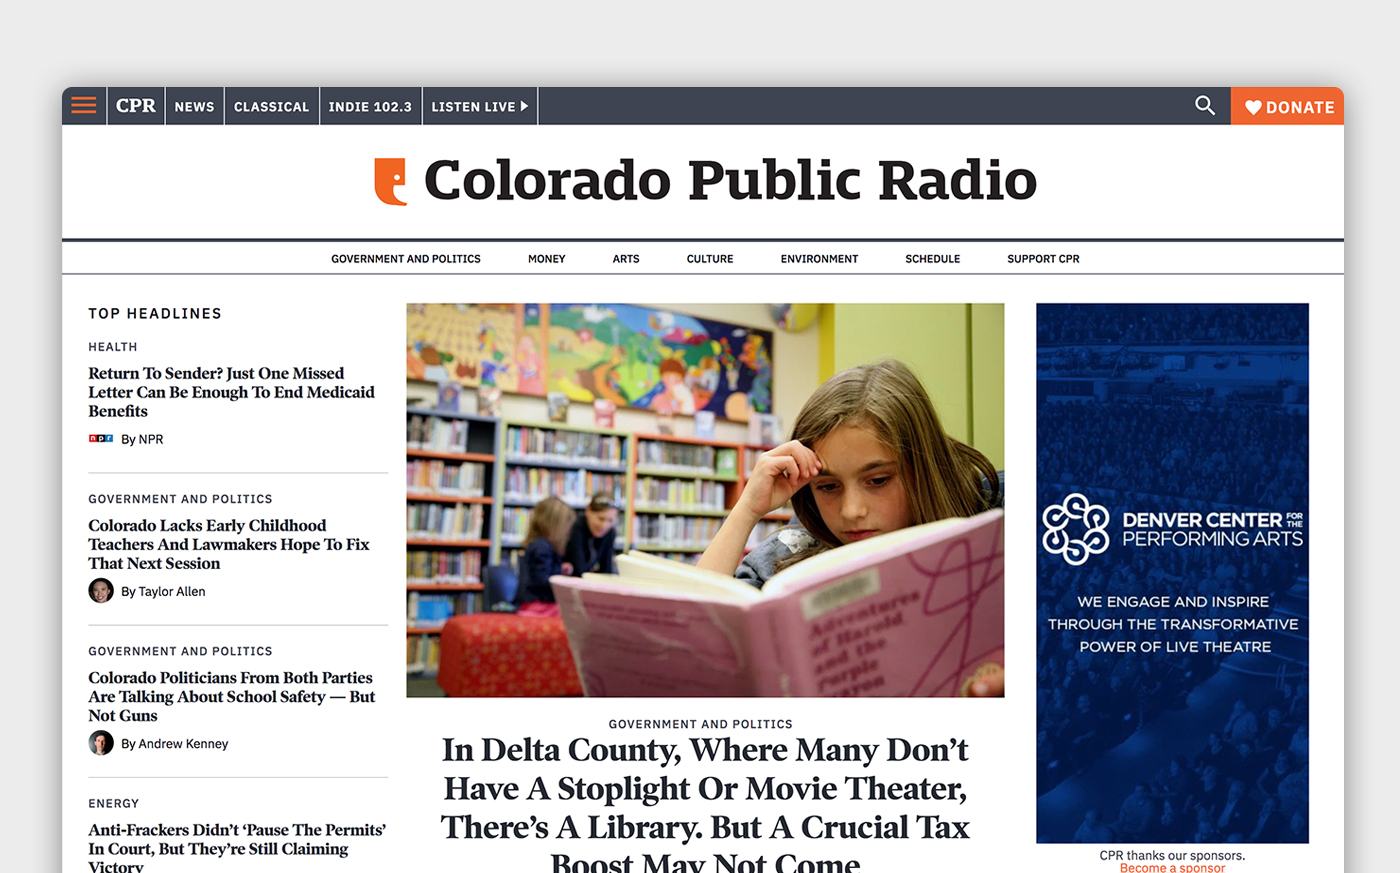 The main page of Colorado Public Radio with navigation, featured article, and additional content